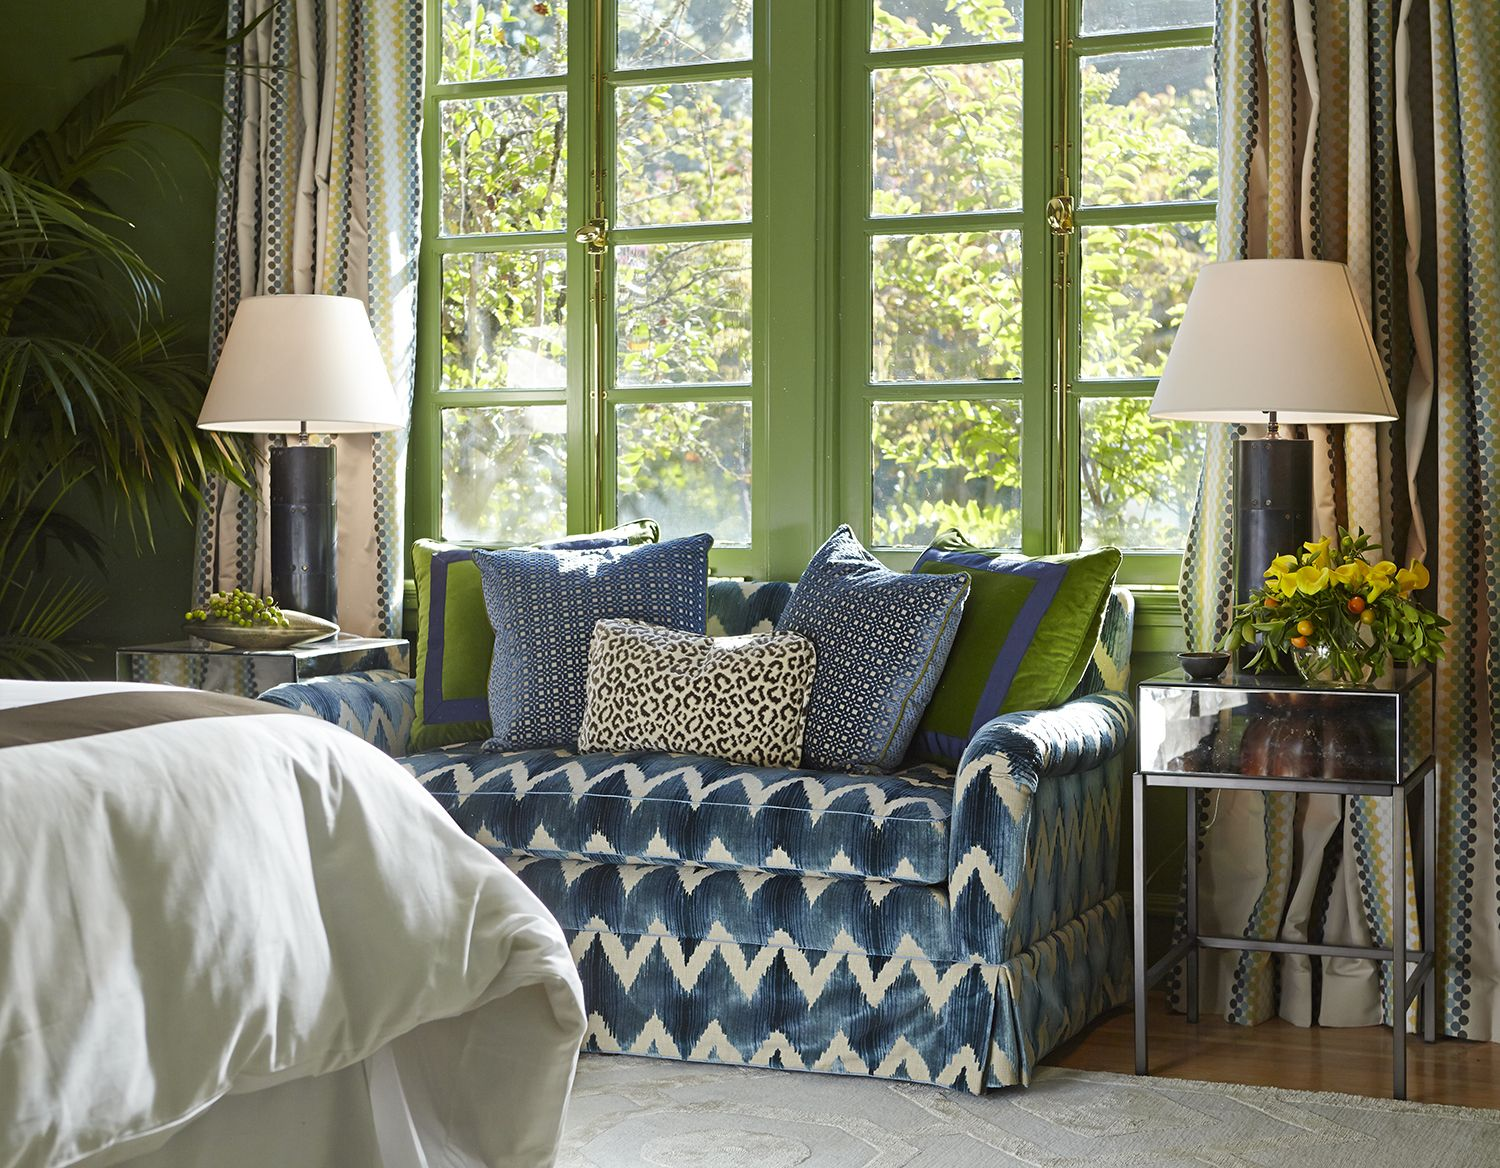 In The Master Bedroom, The Sitting Area Is Dressed In Cool